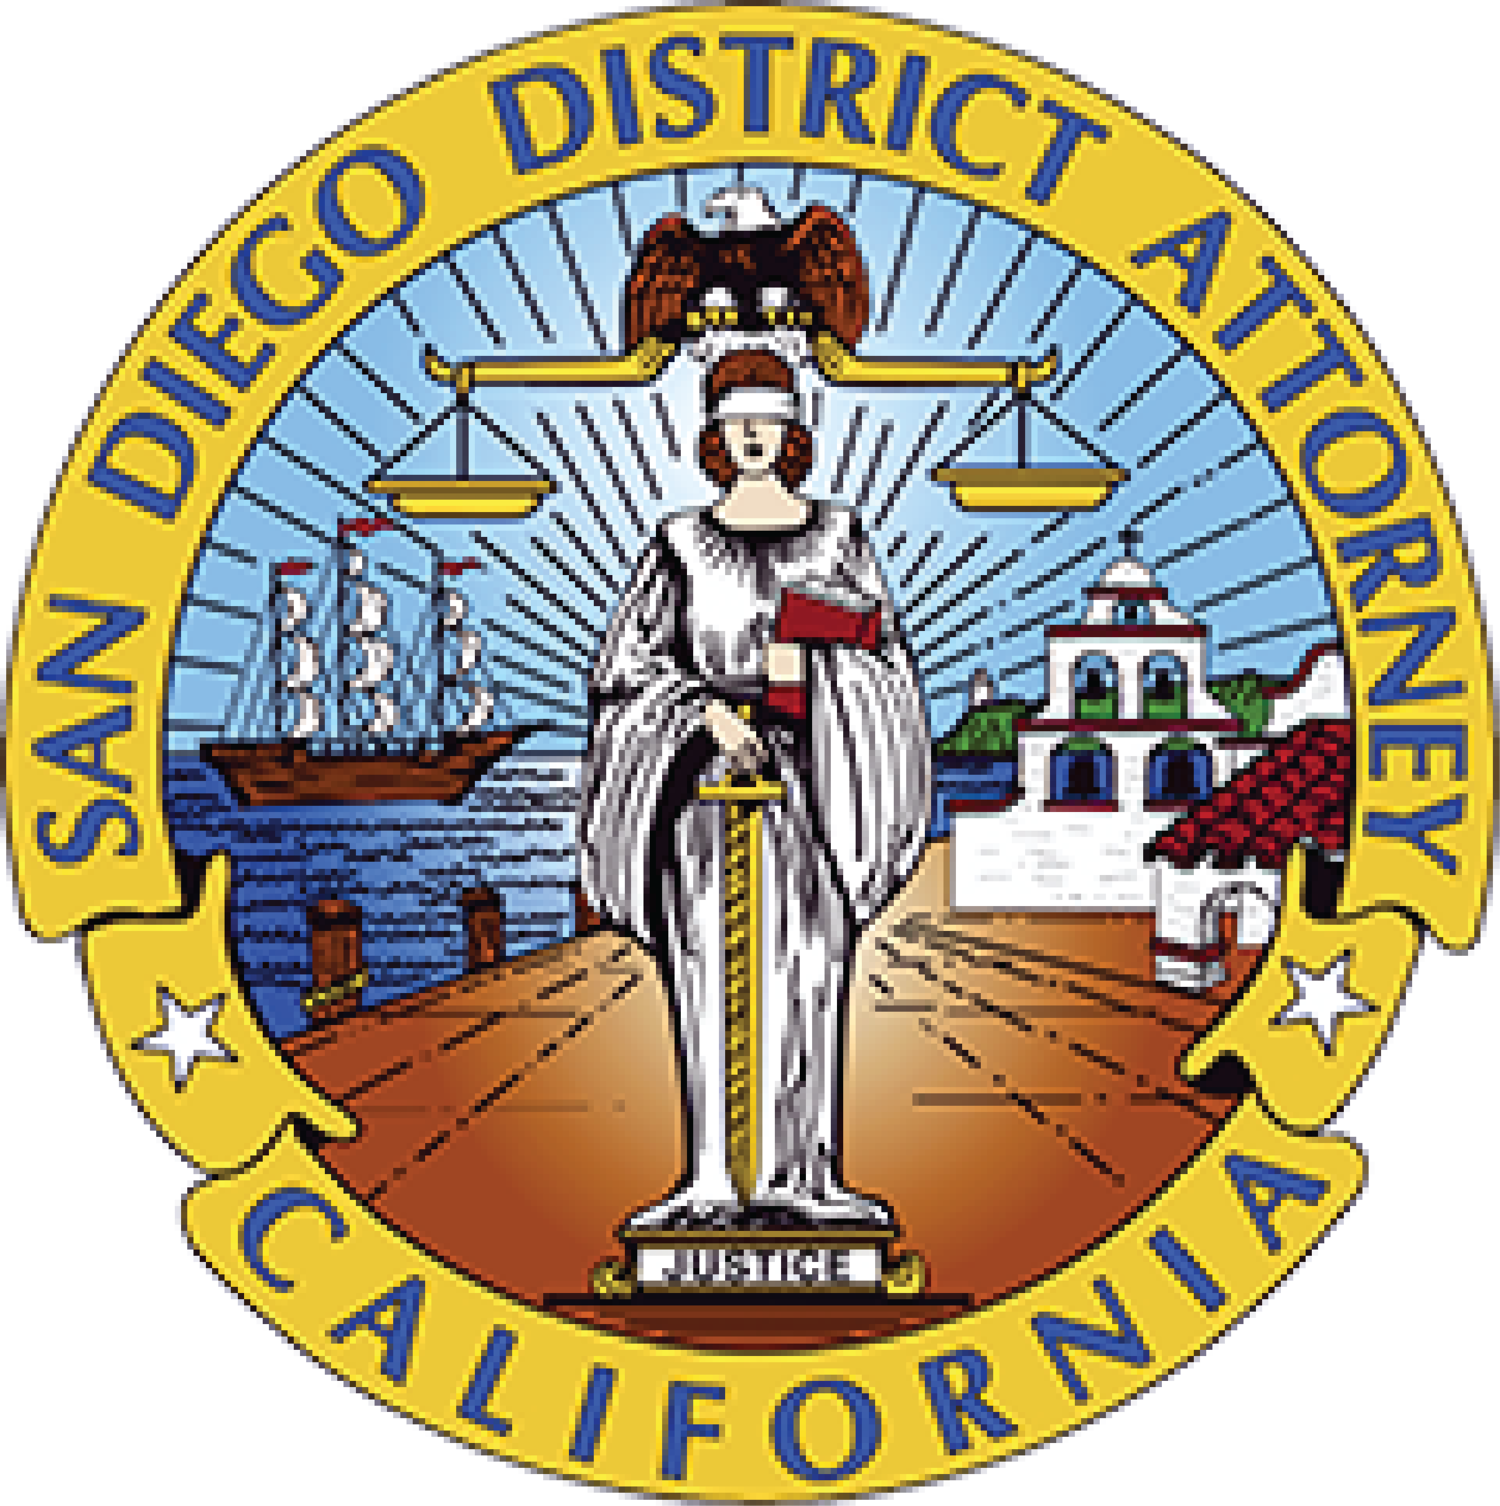 San Diego County District Attorney's Annual Citizens of Courage Awards